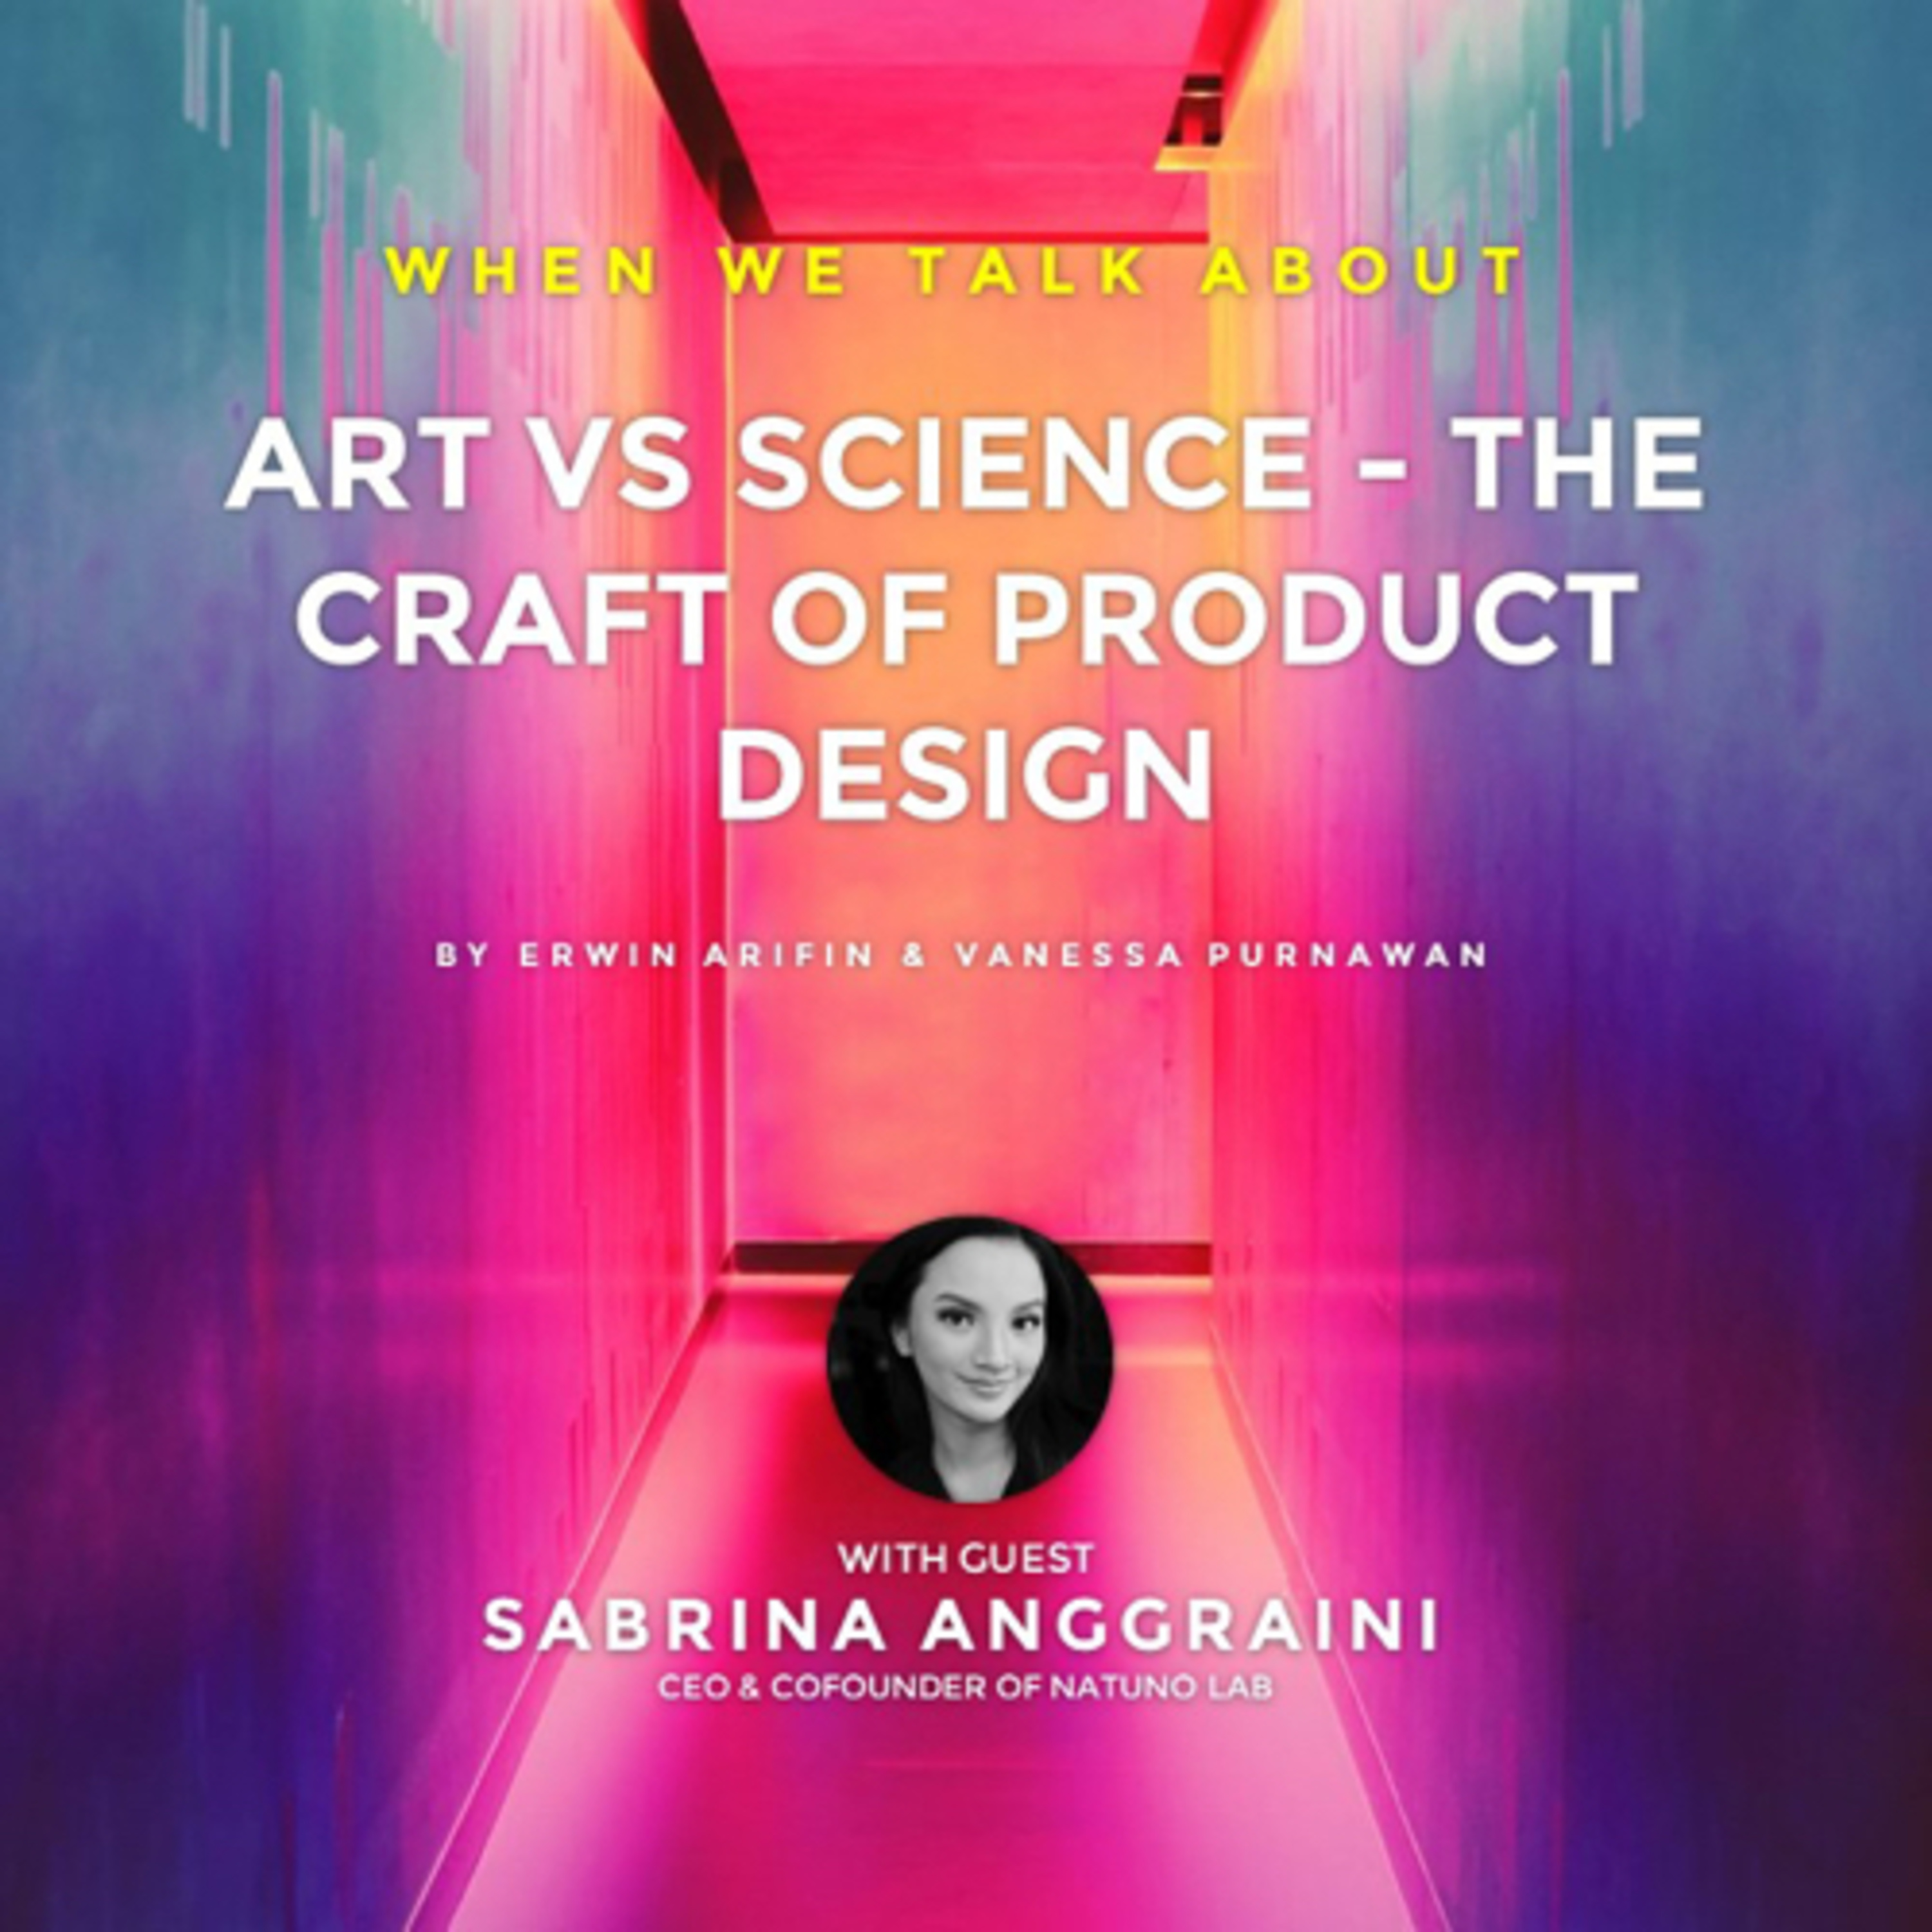 Art vs Science - The Craft of Product Design